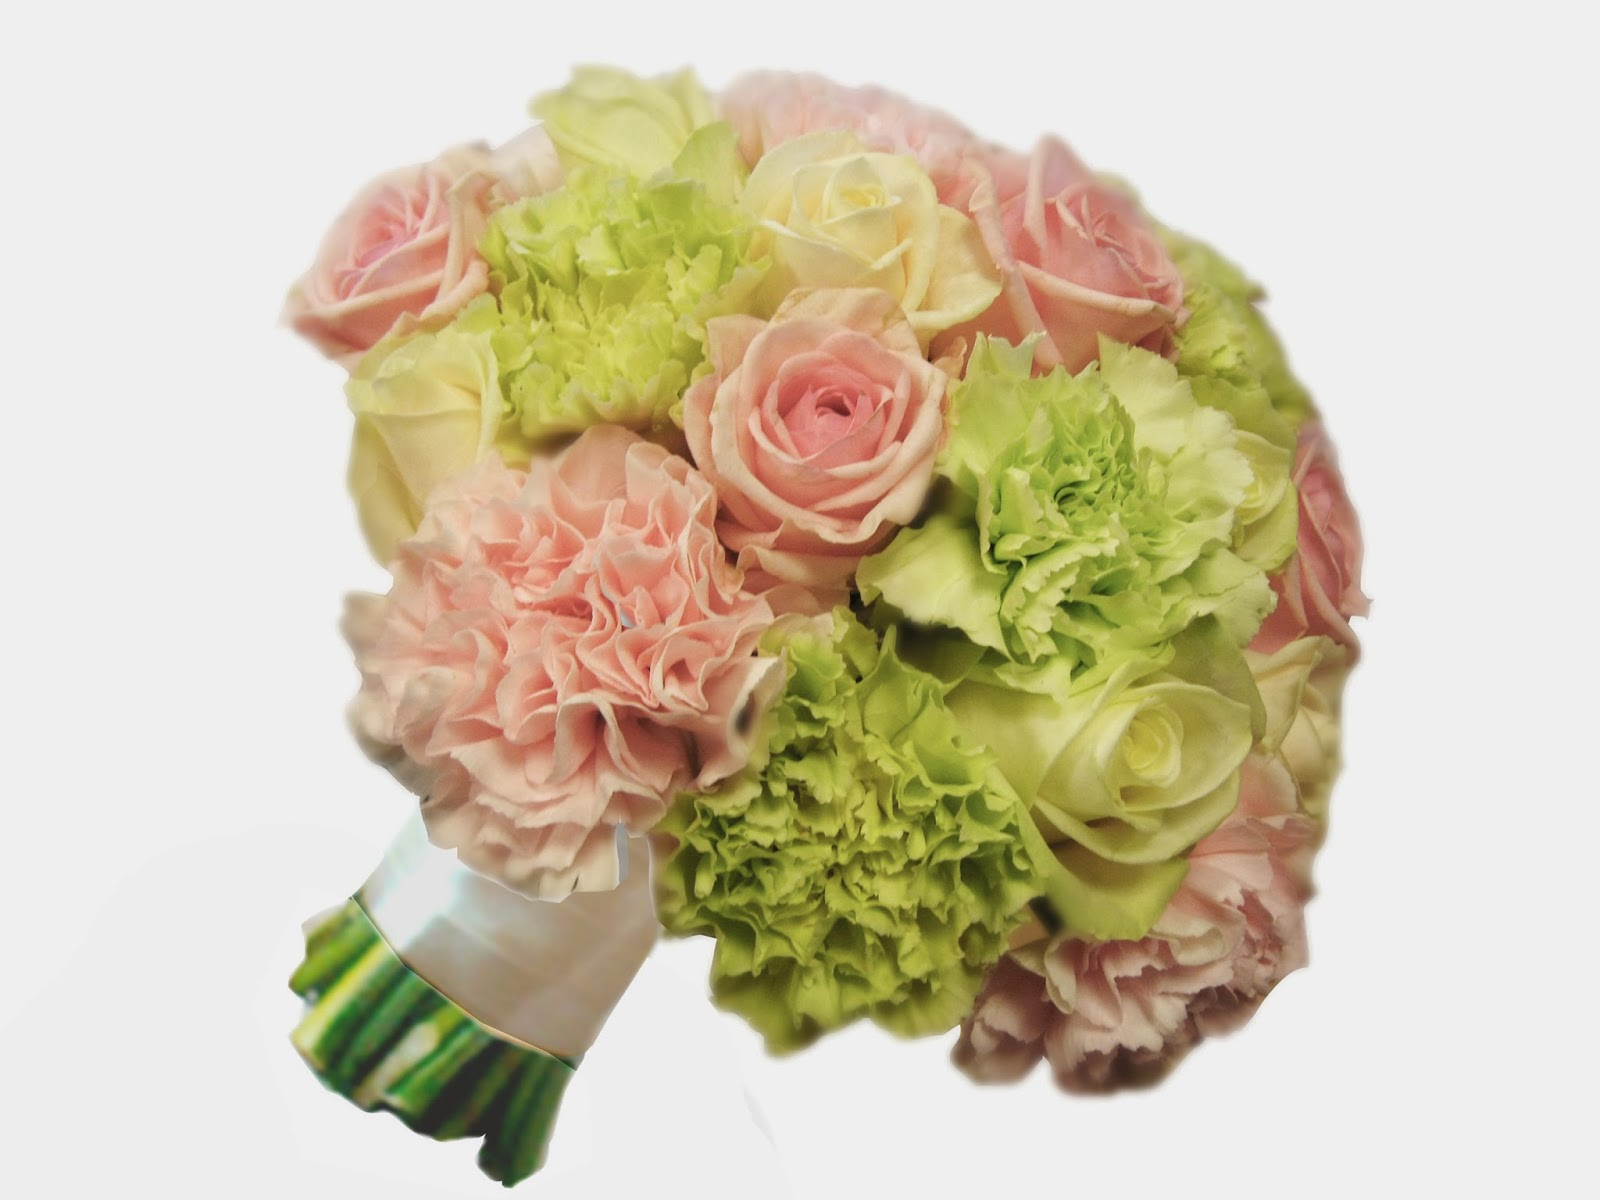 Wedding flowers bouquet png 2014 fresh flowers pink wedding flower png purple wedding bouquets png izmirmasajfo